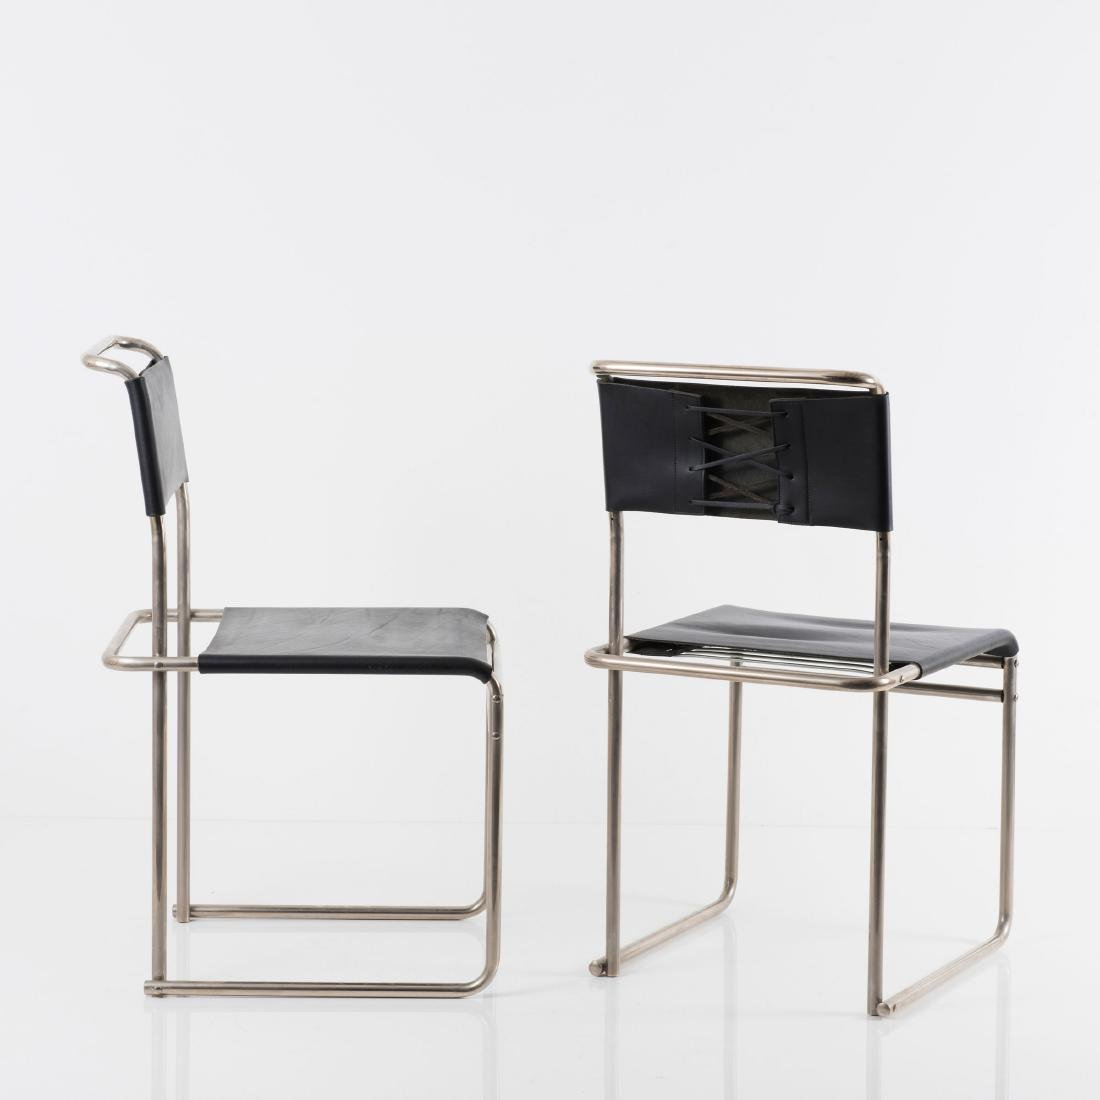 Four 'B 5' side chairs, 1926 - 9